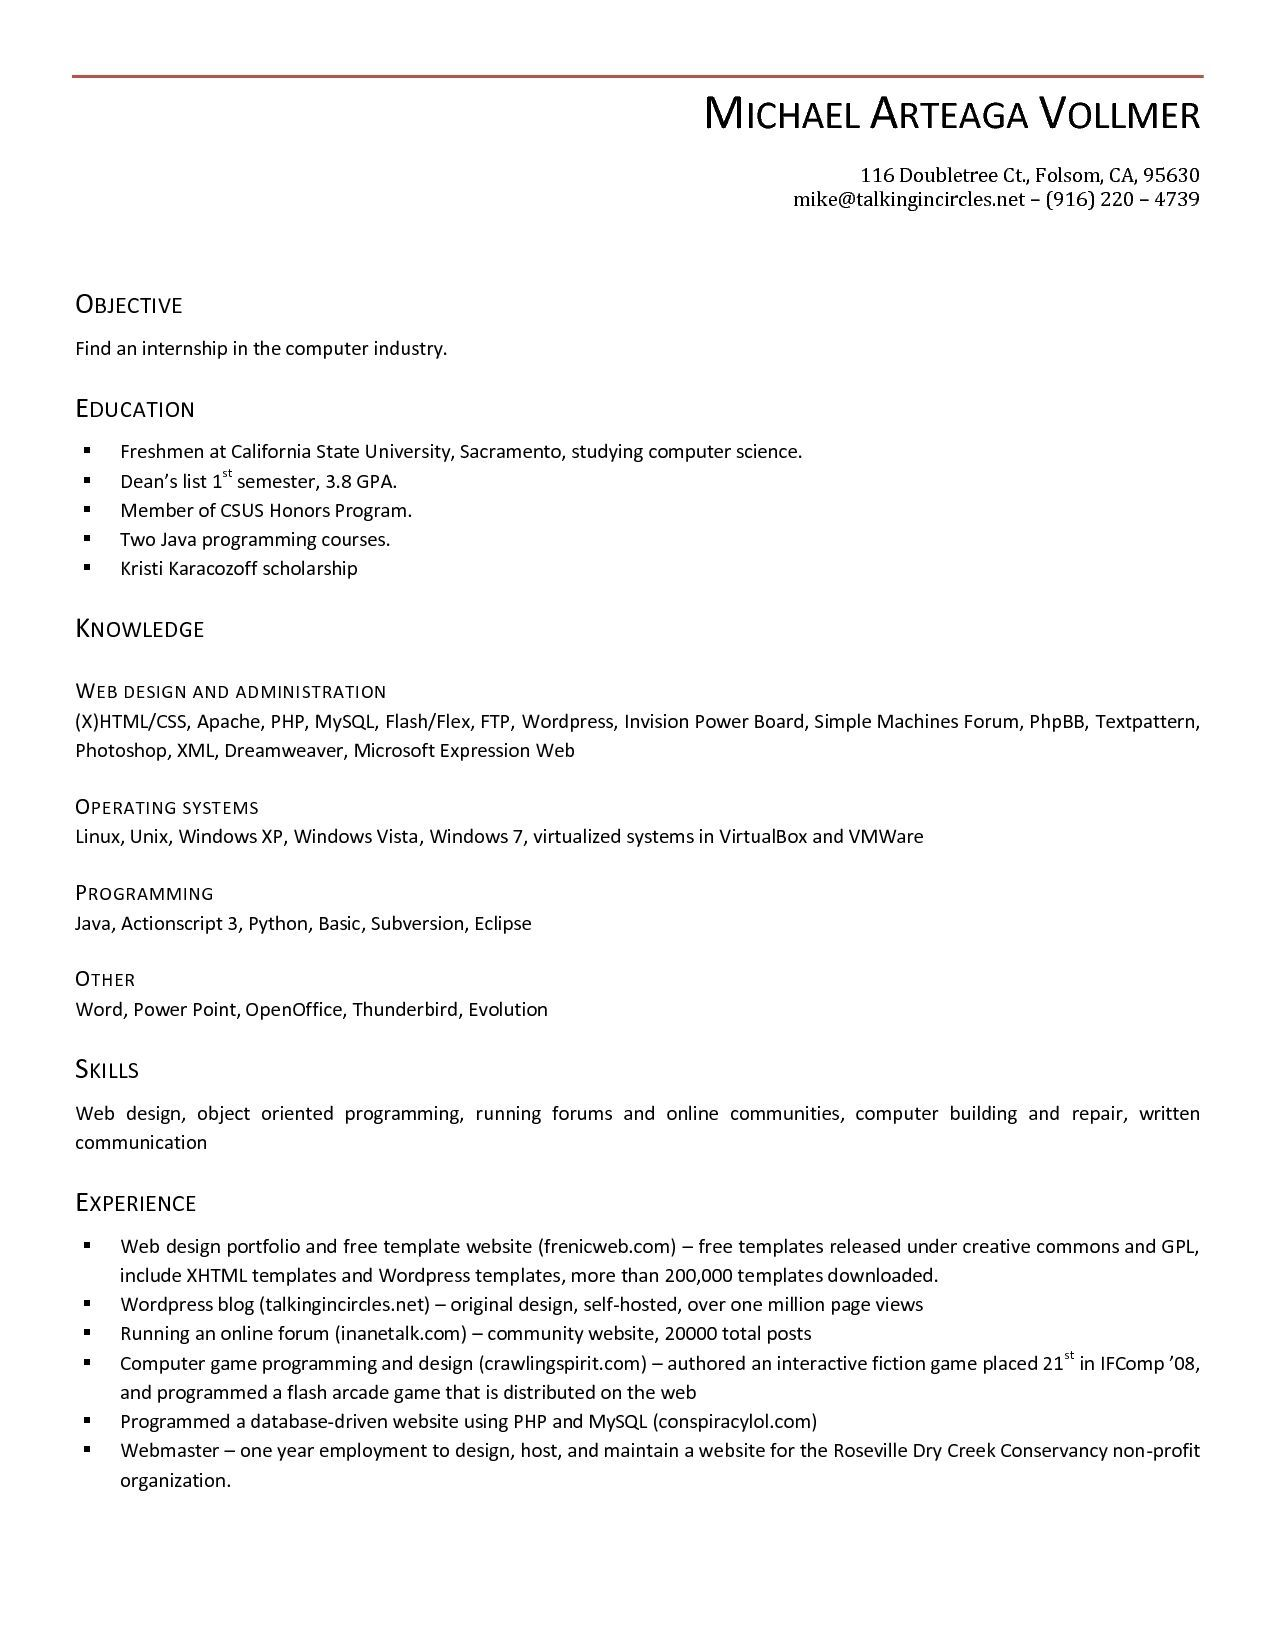 free resume templates windows cover letter for references professional summary hobbies Resume Windows 7 Resume Templates Free